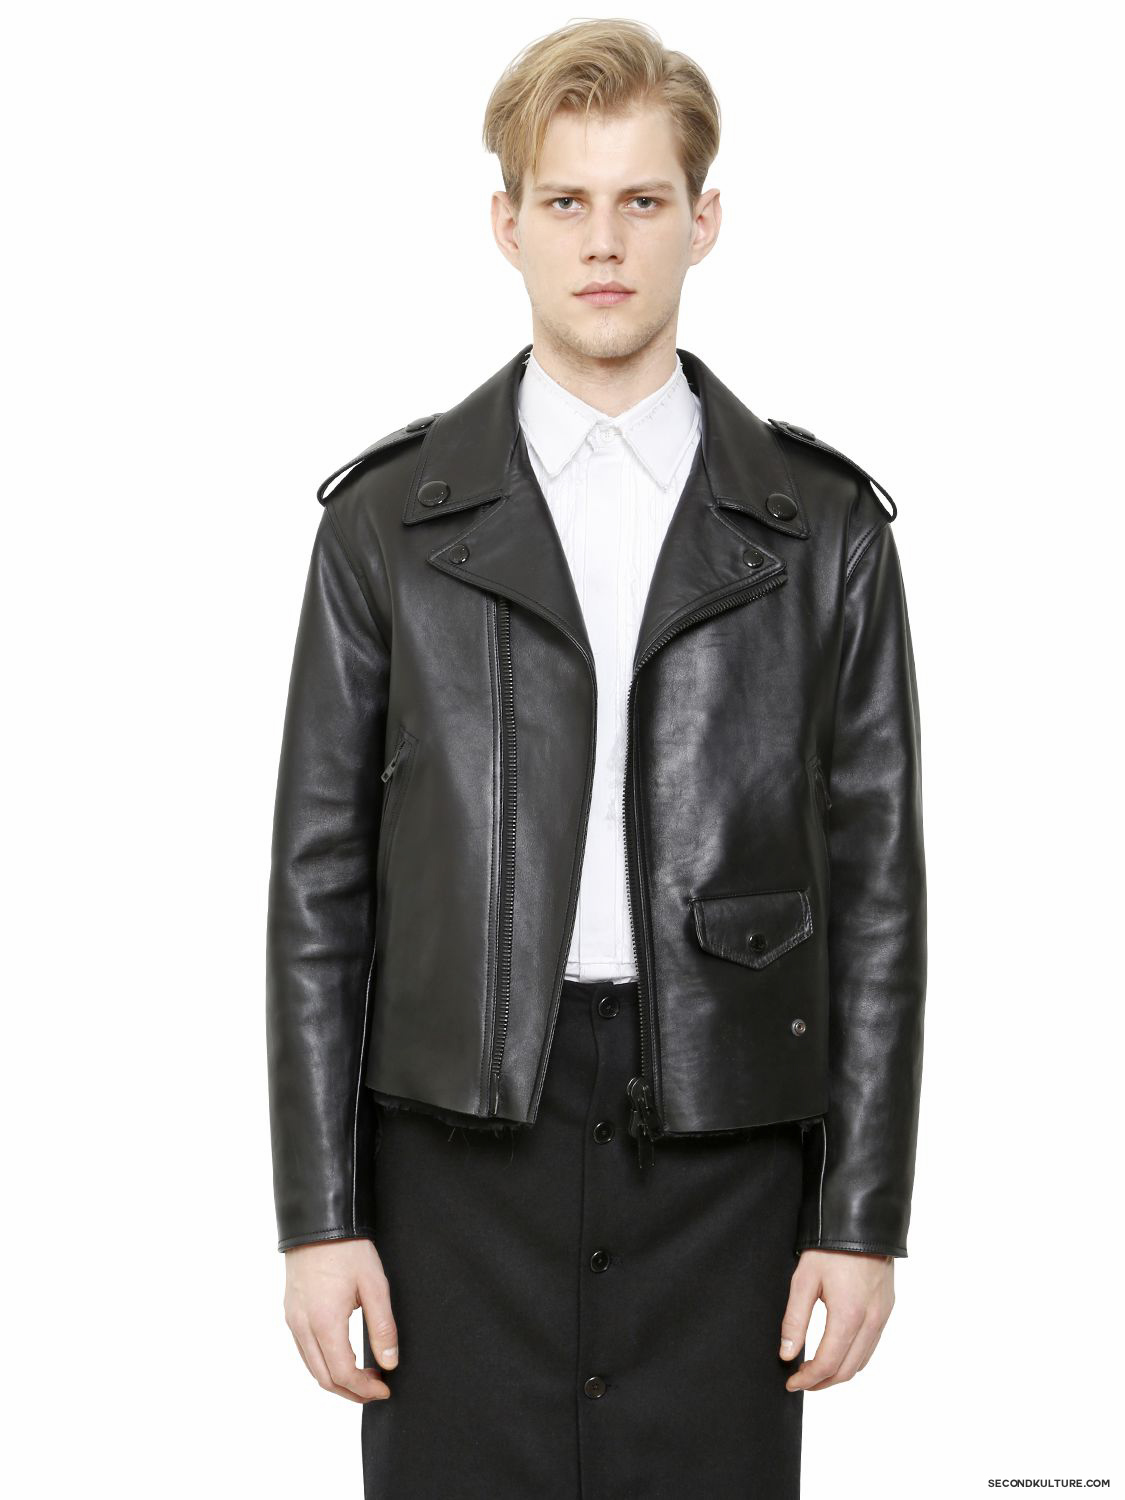 Givenchy-Black-Leather-Biker-Jacket-Fall-Winter-2015-1